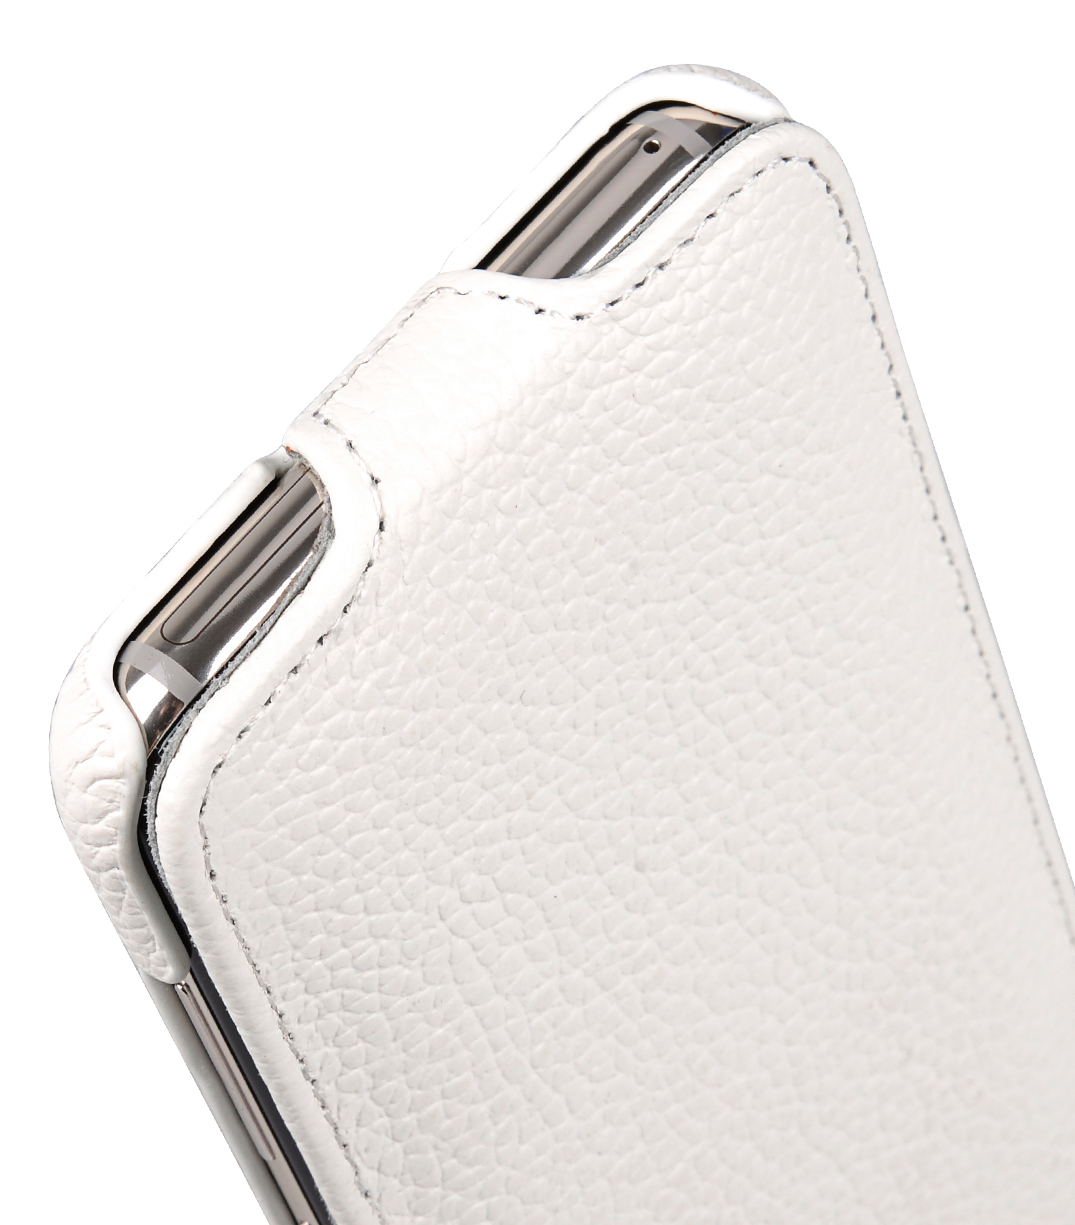 Melkco Premium Leather Case for Samsung Galaxy S8 - Jacka Type ( White LC )